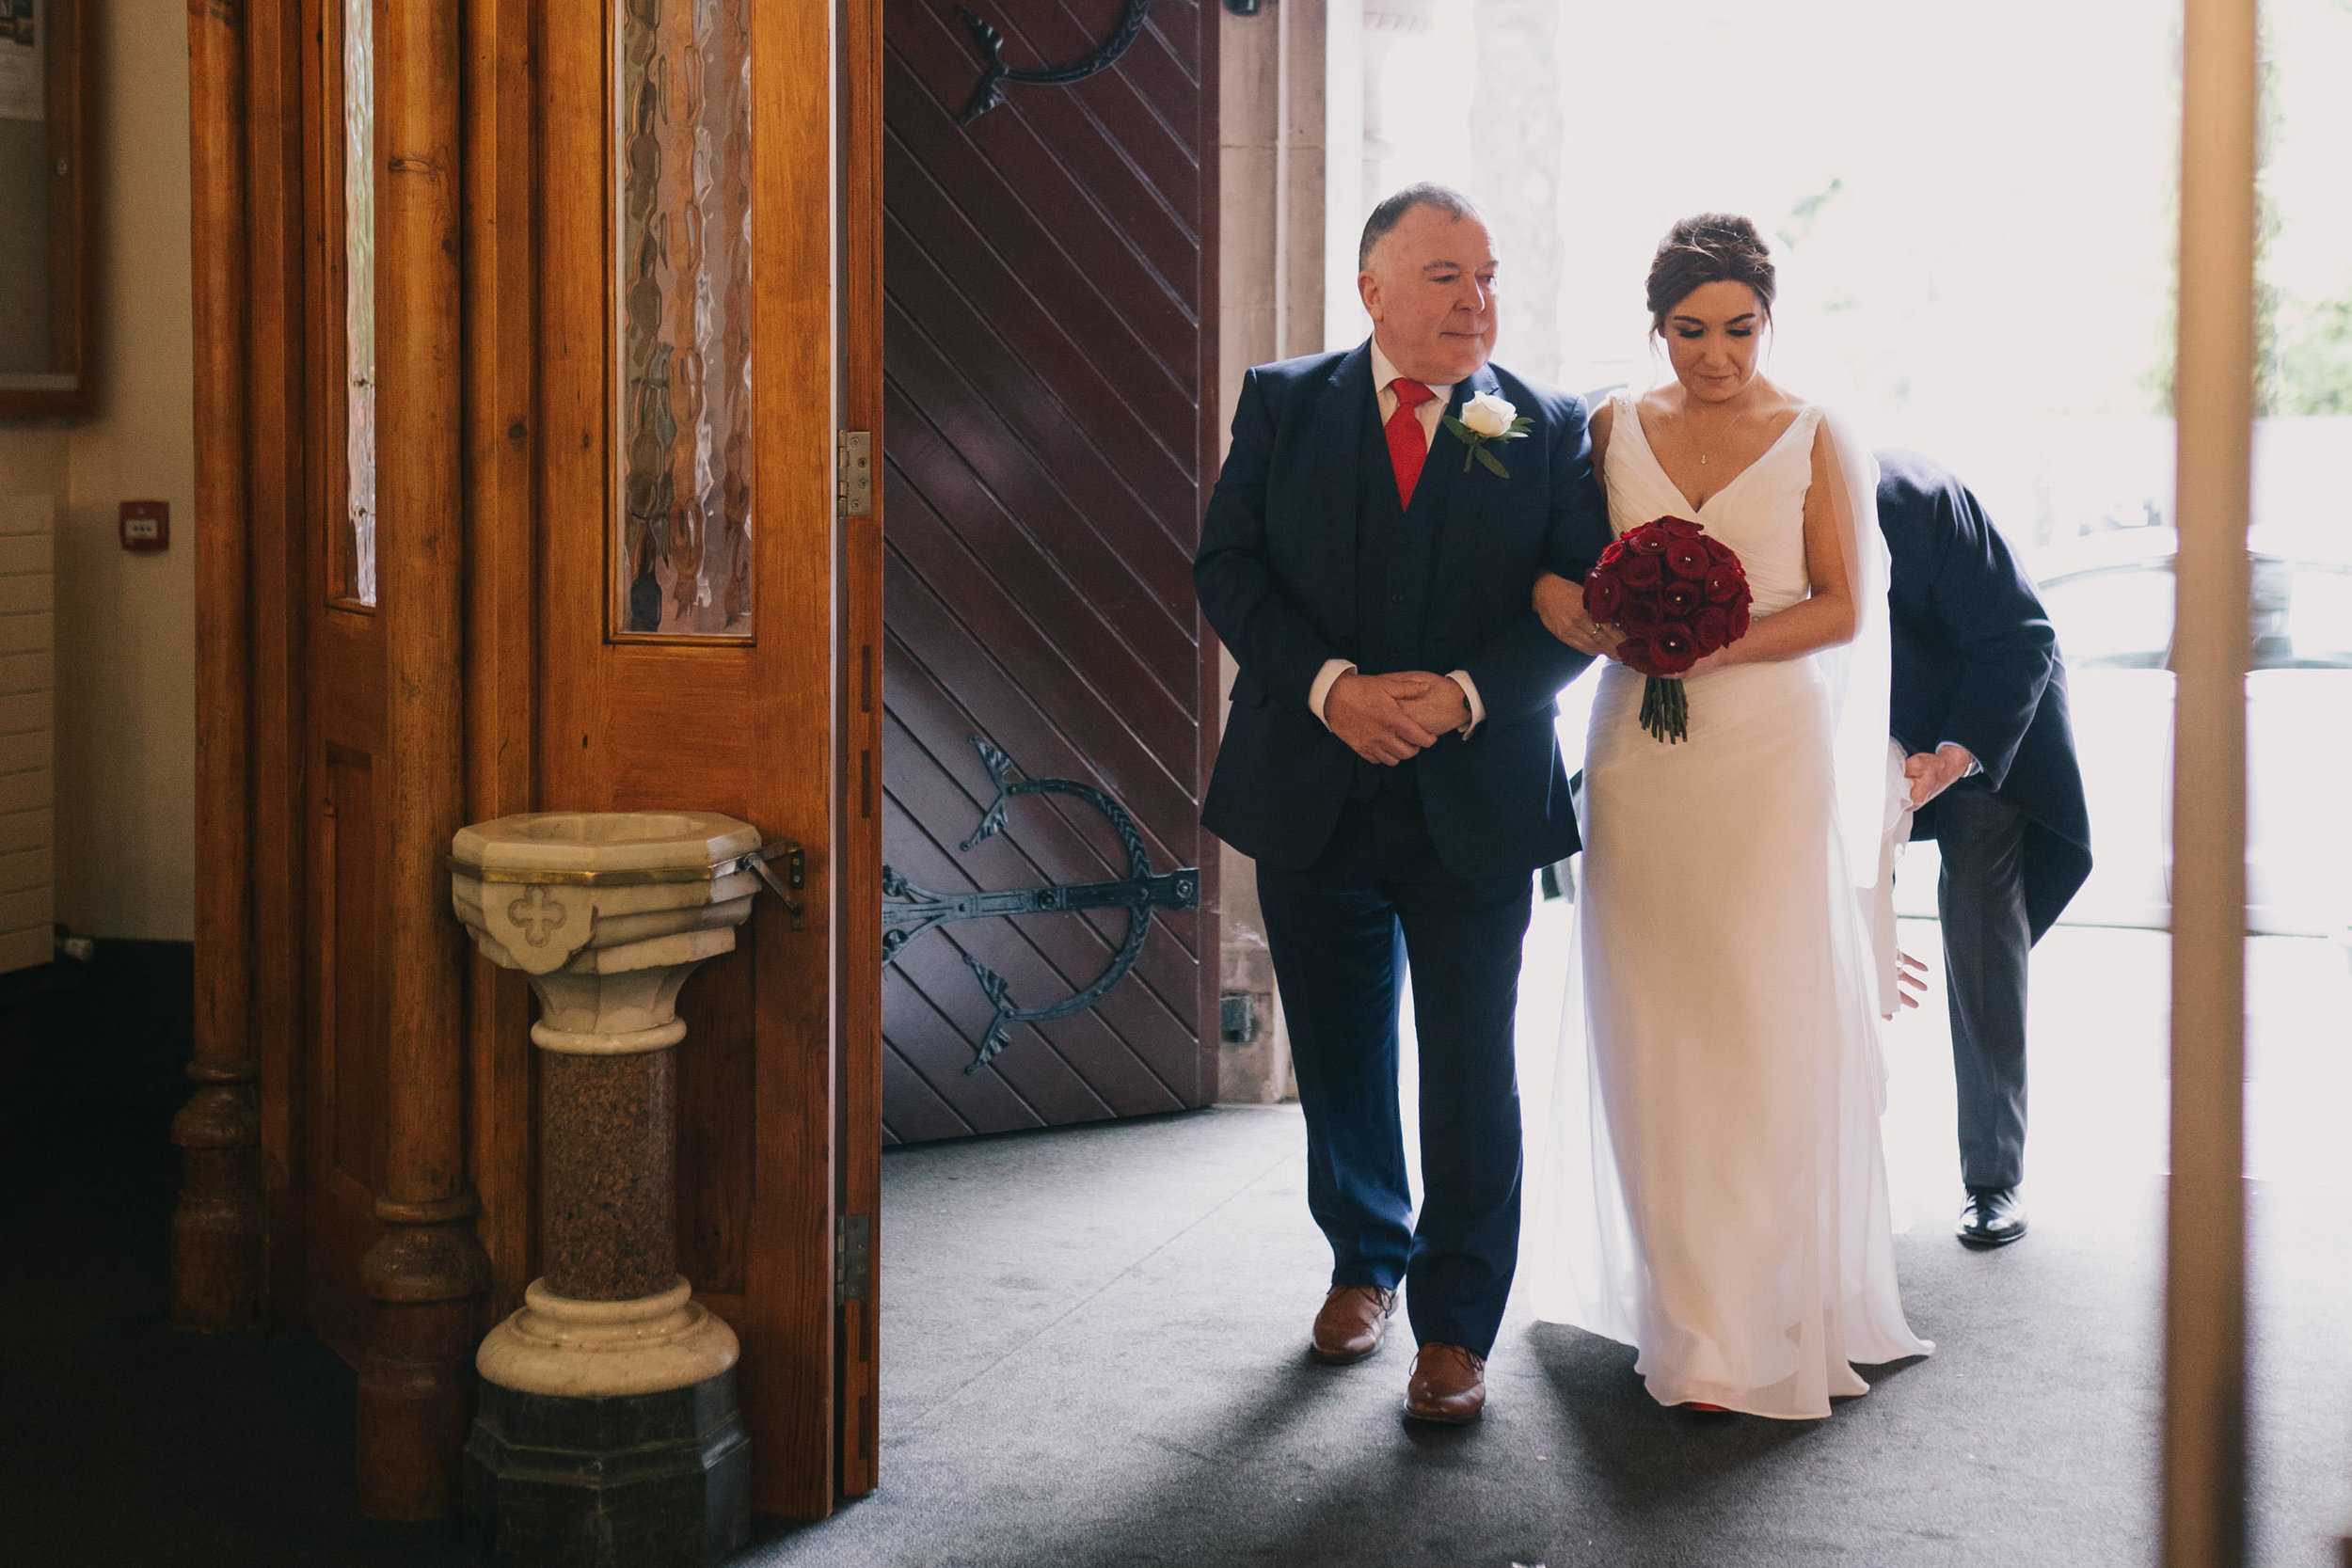 Barberstown_Castle_Wedding_Photographer_Livia_Figueiredo_185.jpg